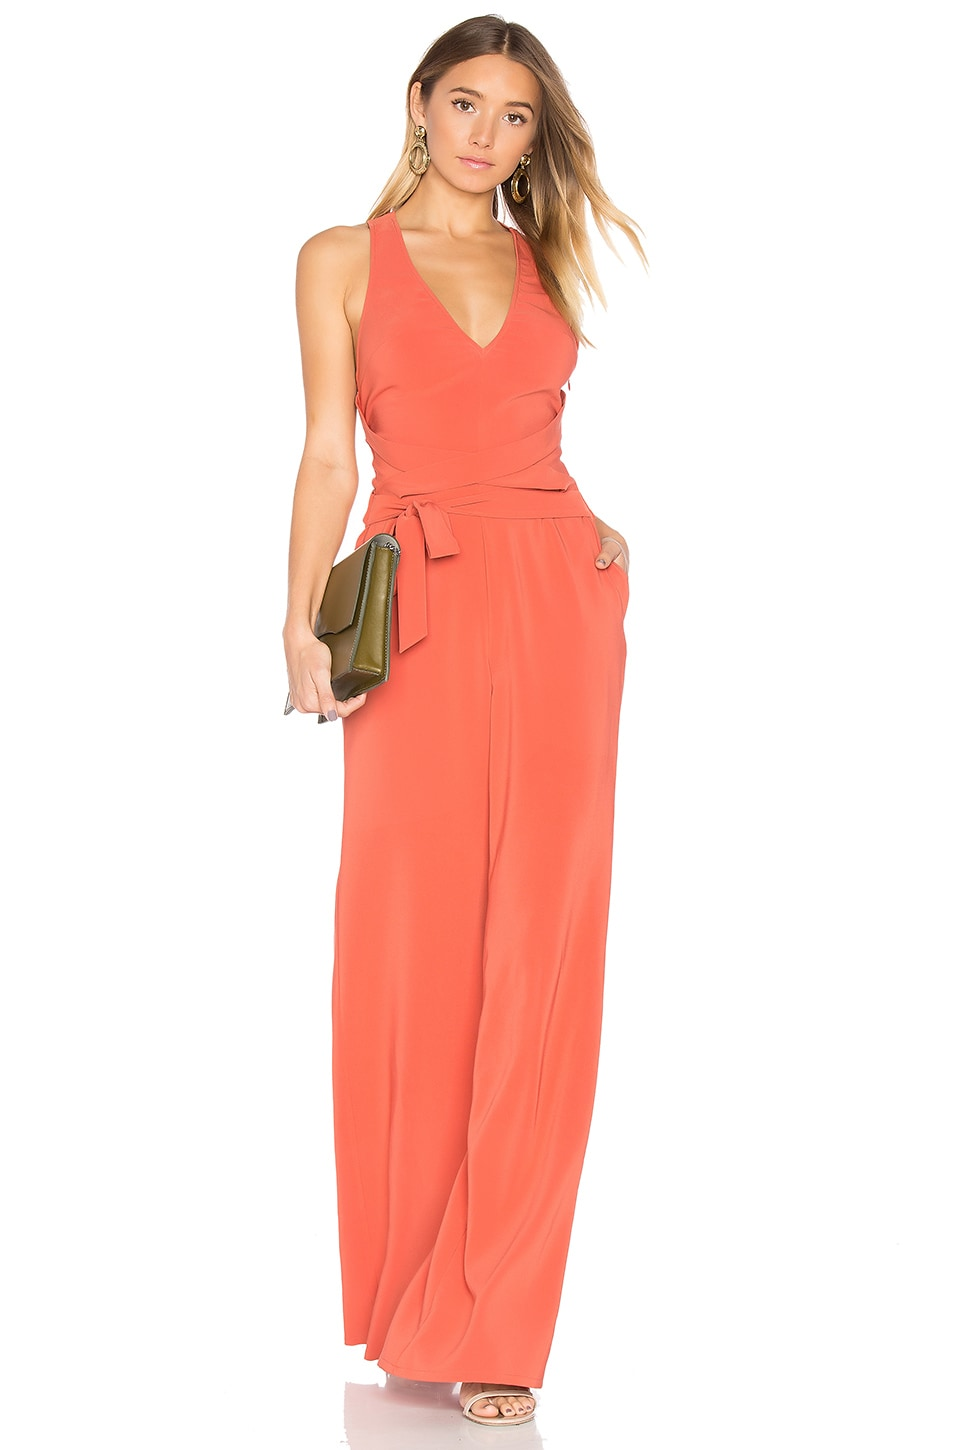 Lovers + Friends x REVOLVE X Marks The Spot Jumpsuit in Blood Orange